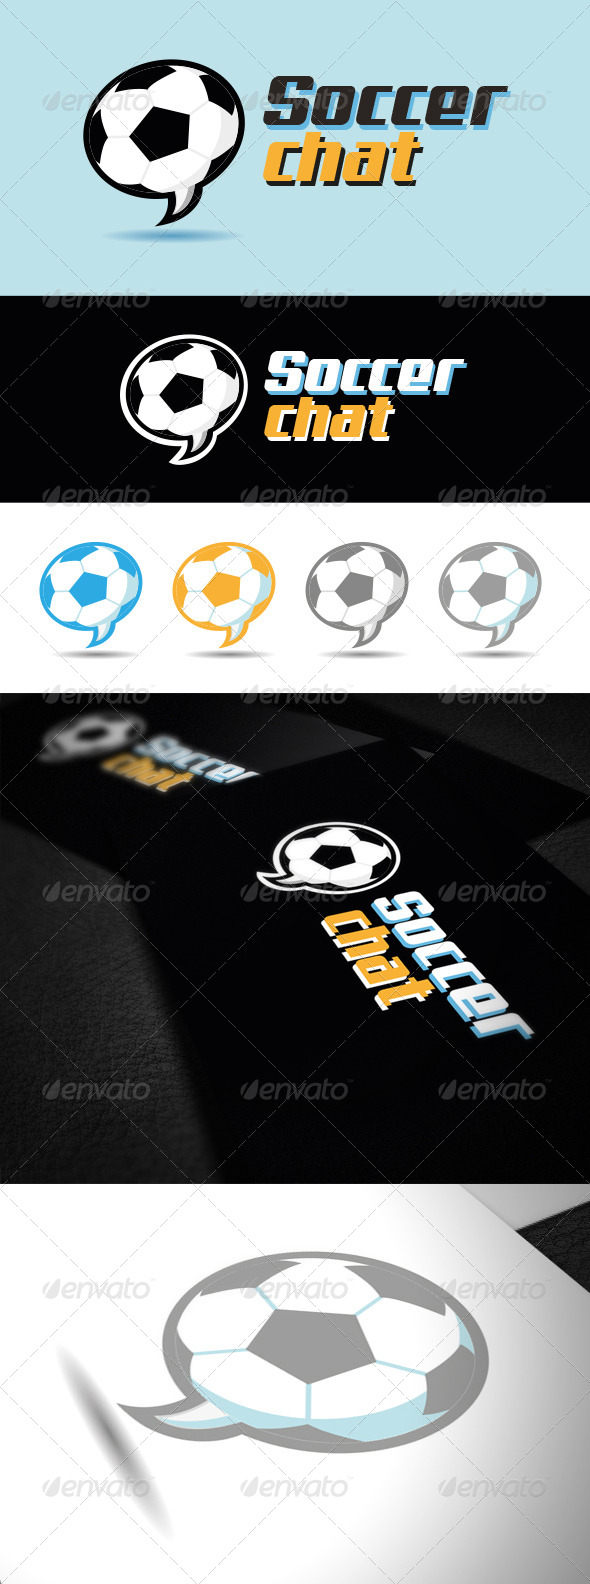 GraphicRiver Soccer Chat 5541910